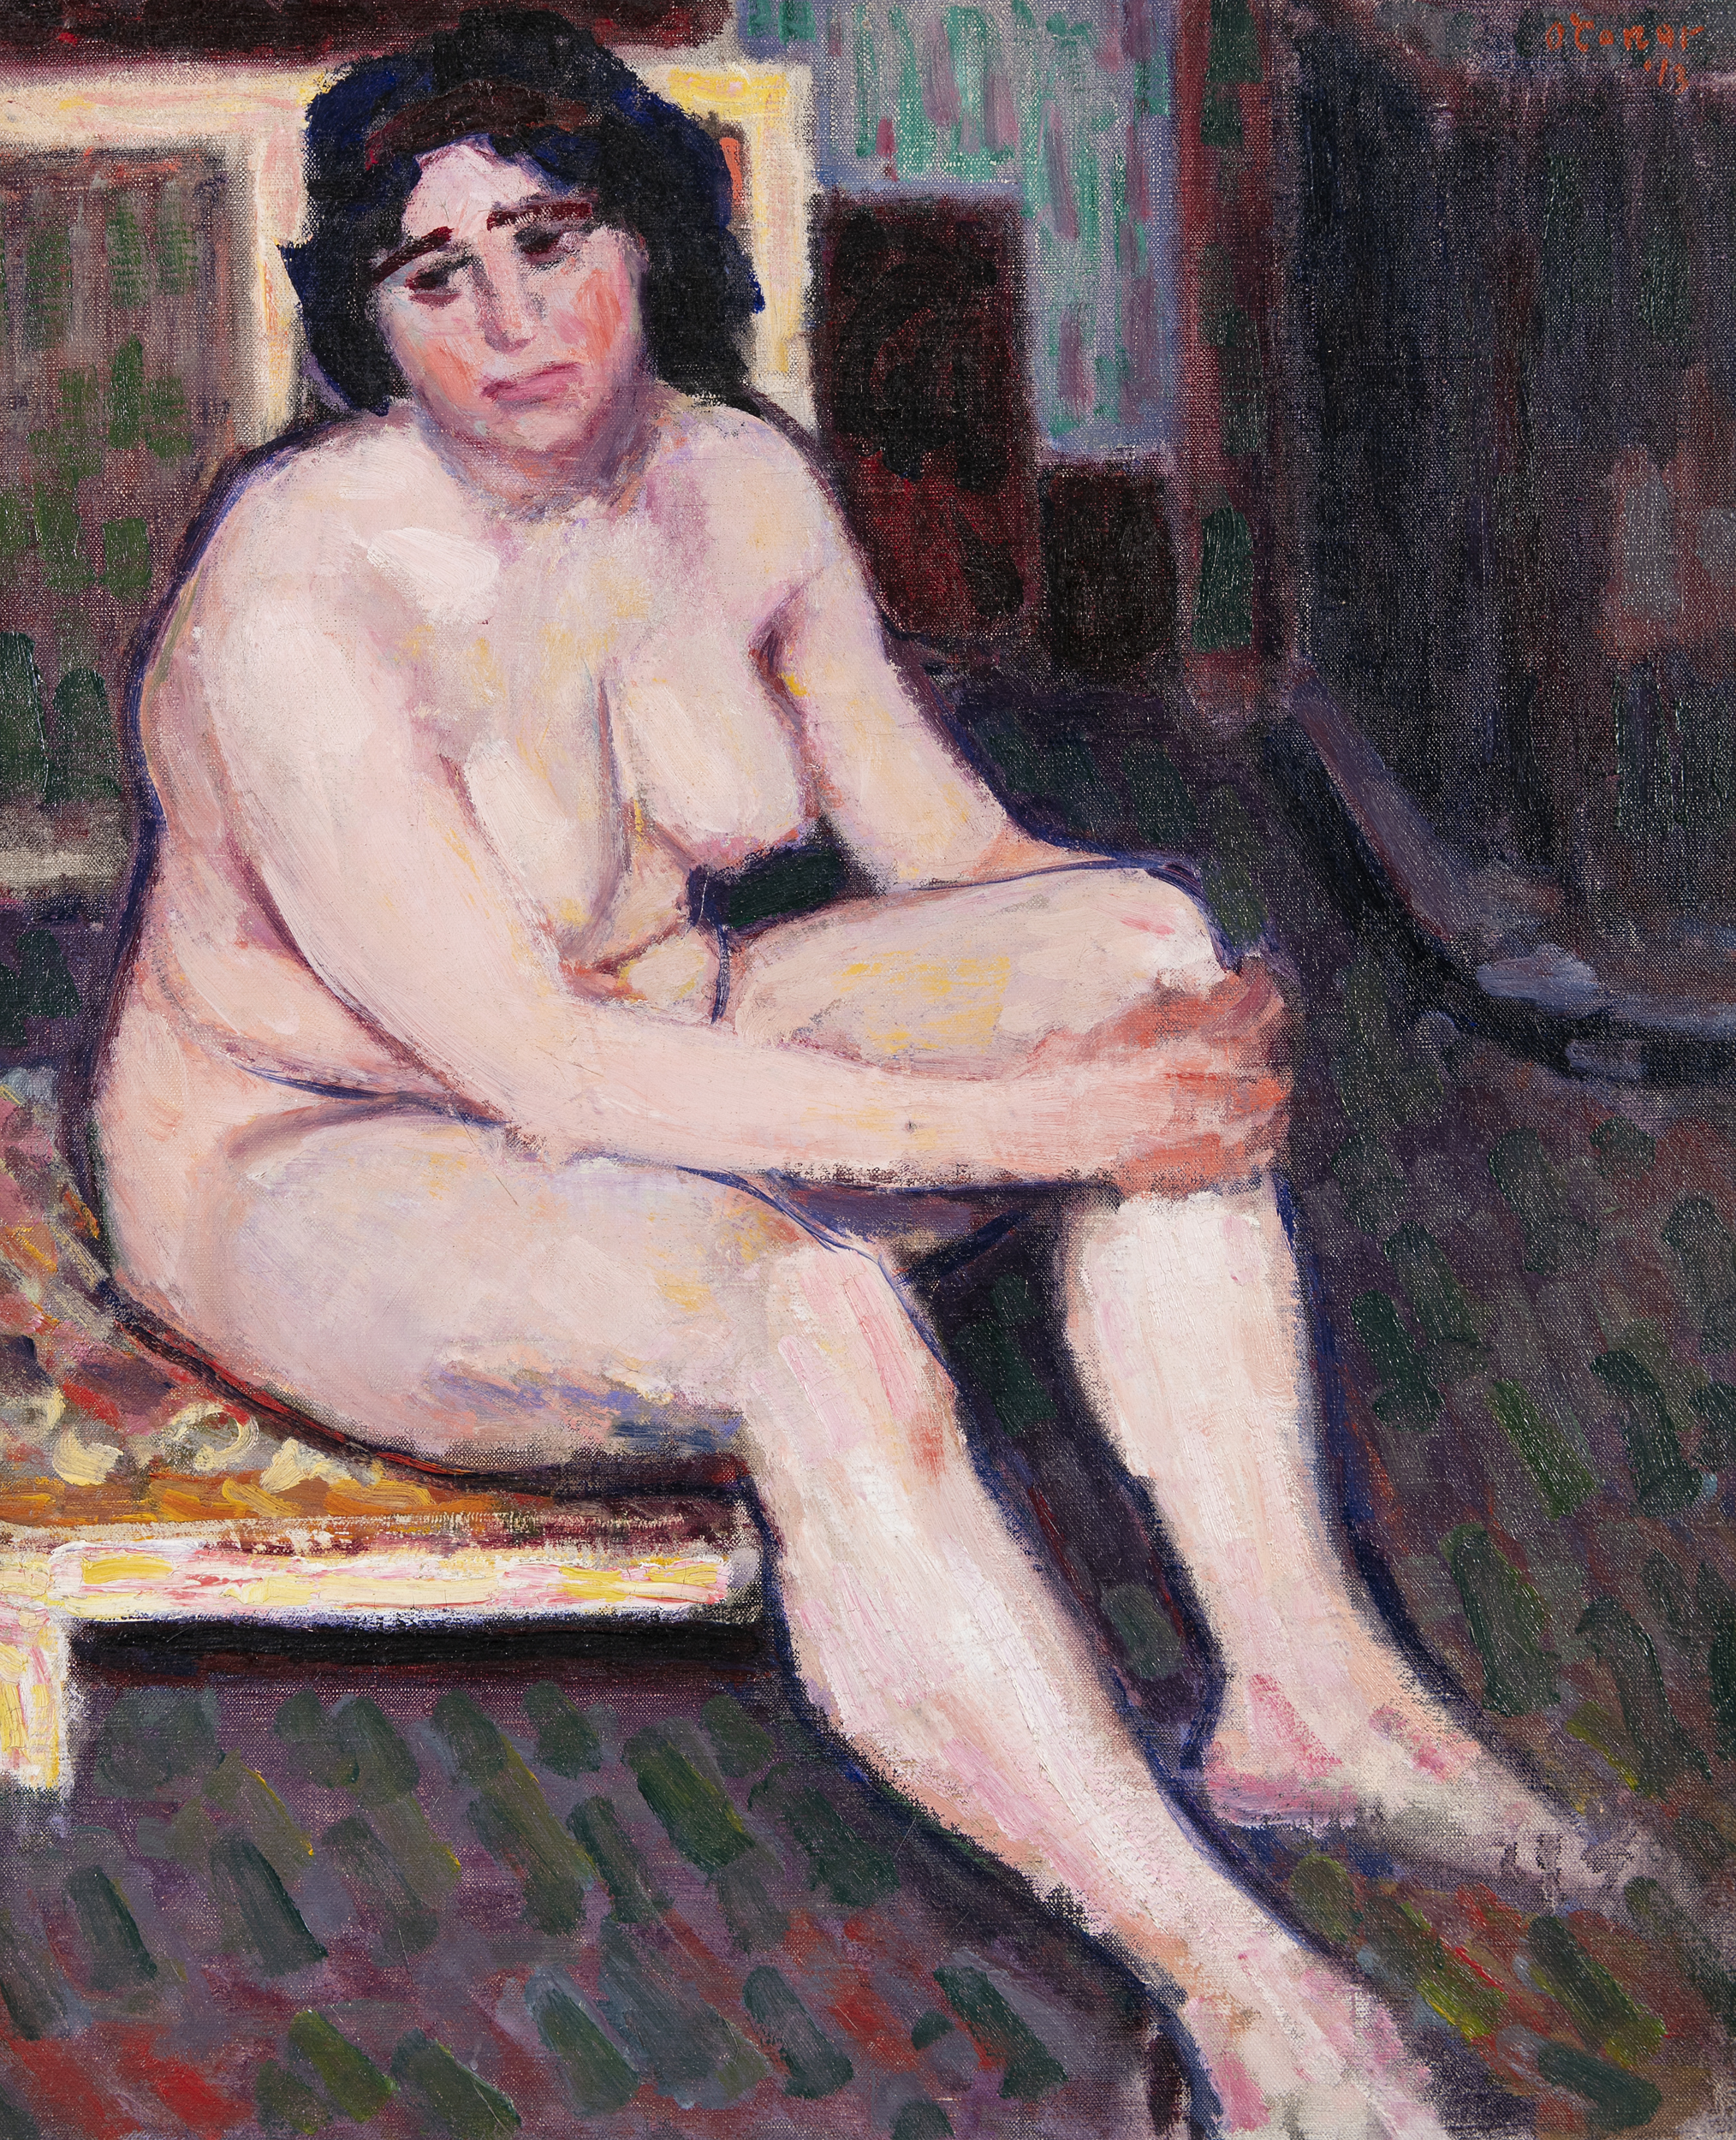 Lot 40 - Roderic O'Conor (1860 - 1940)Nu Brun, Assis or 'Dark-Haired Nude Seated' (1913)Oil on canvas, 65 x